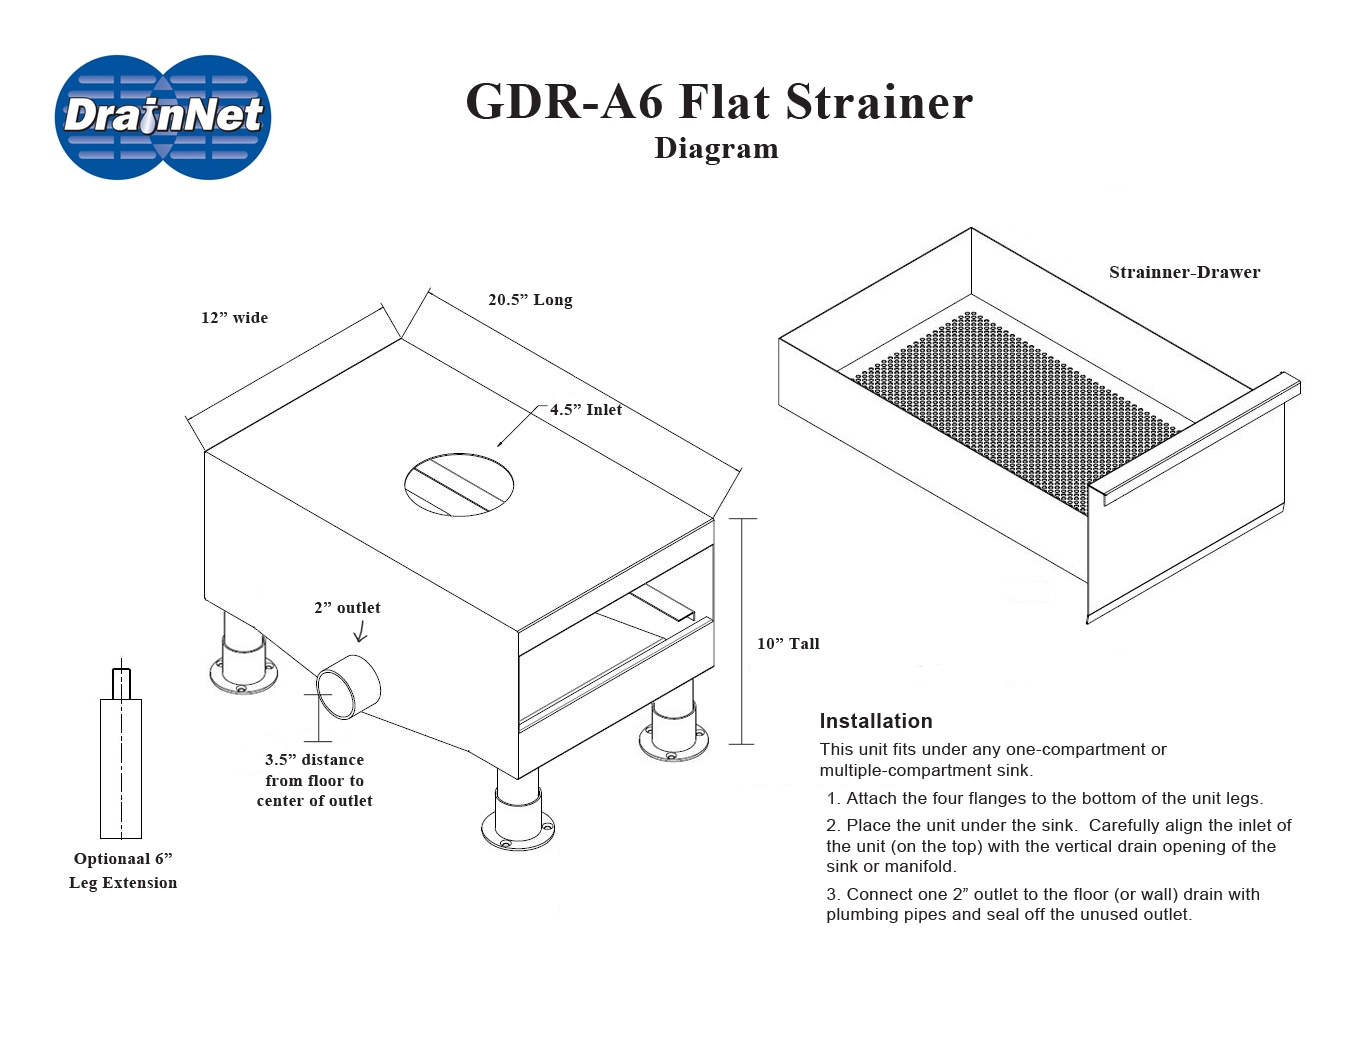 A6 Flat Strainer